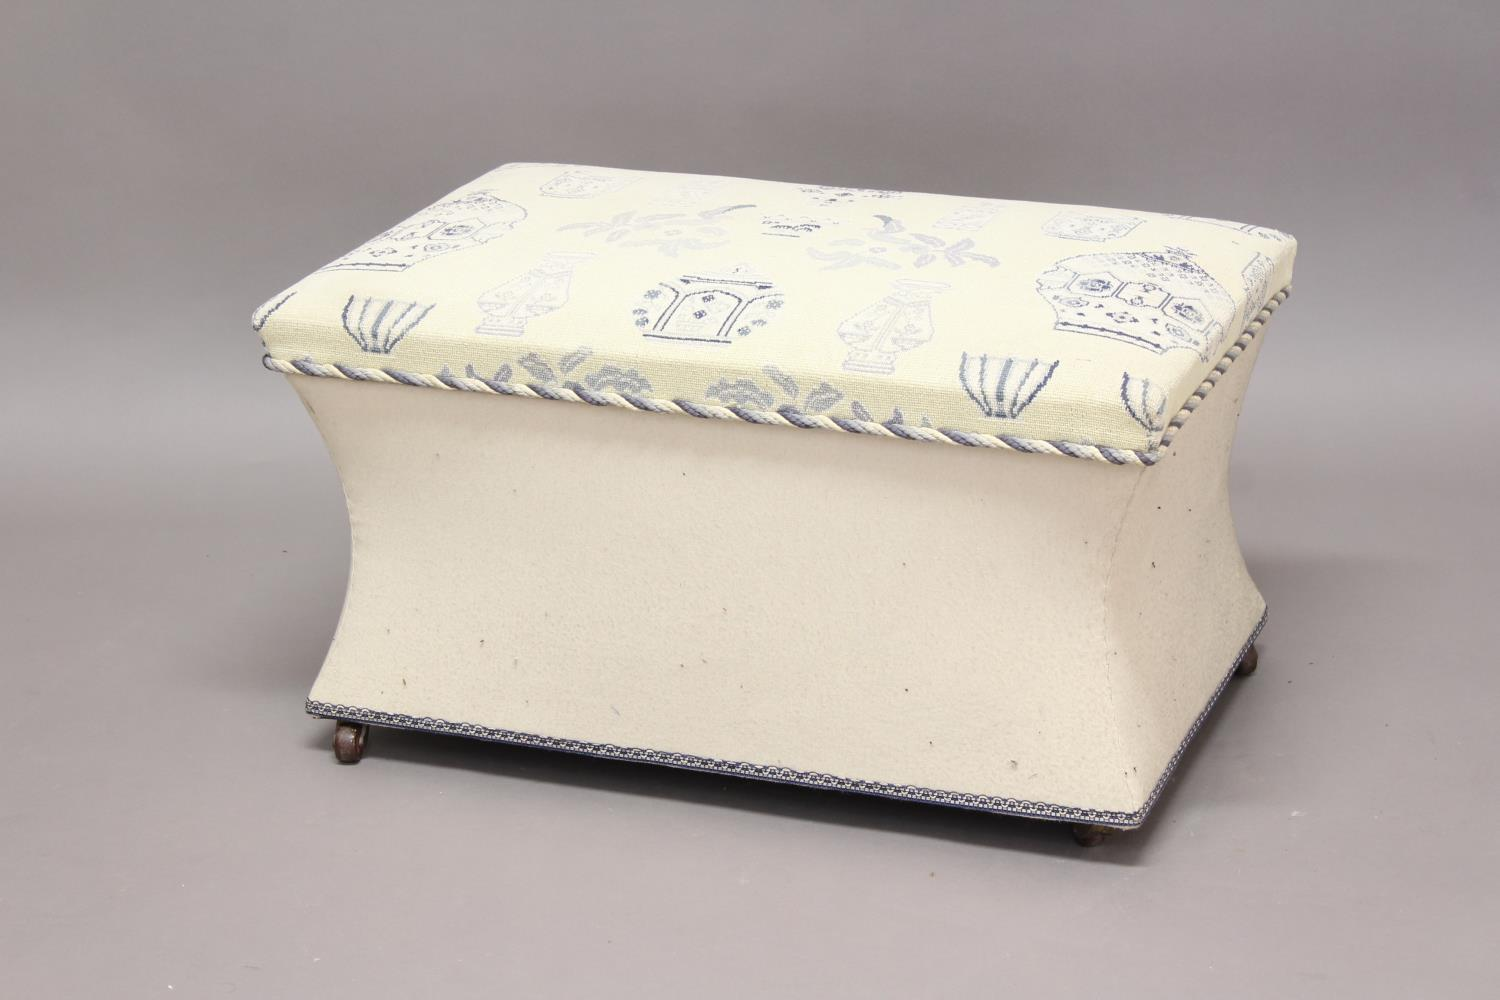 A VICTORIAN STYLE UPHOLSTERED BOX OTTOMAN. The rectangular box ottoman upholstered in blue and white